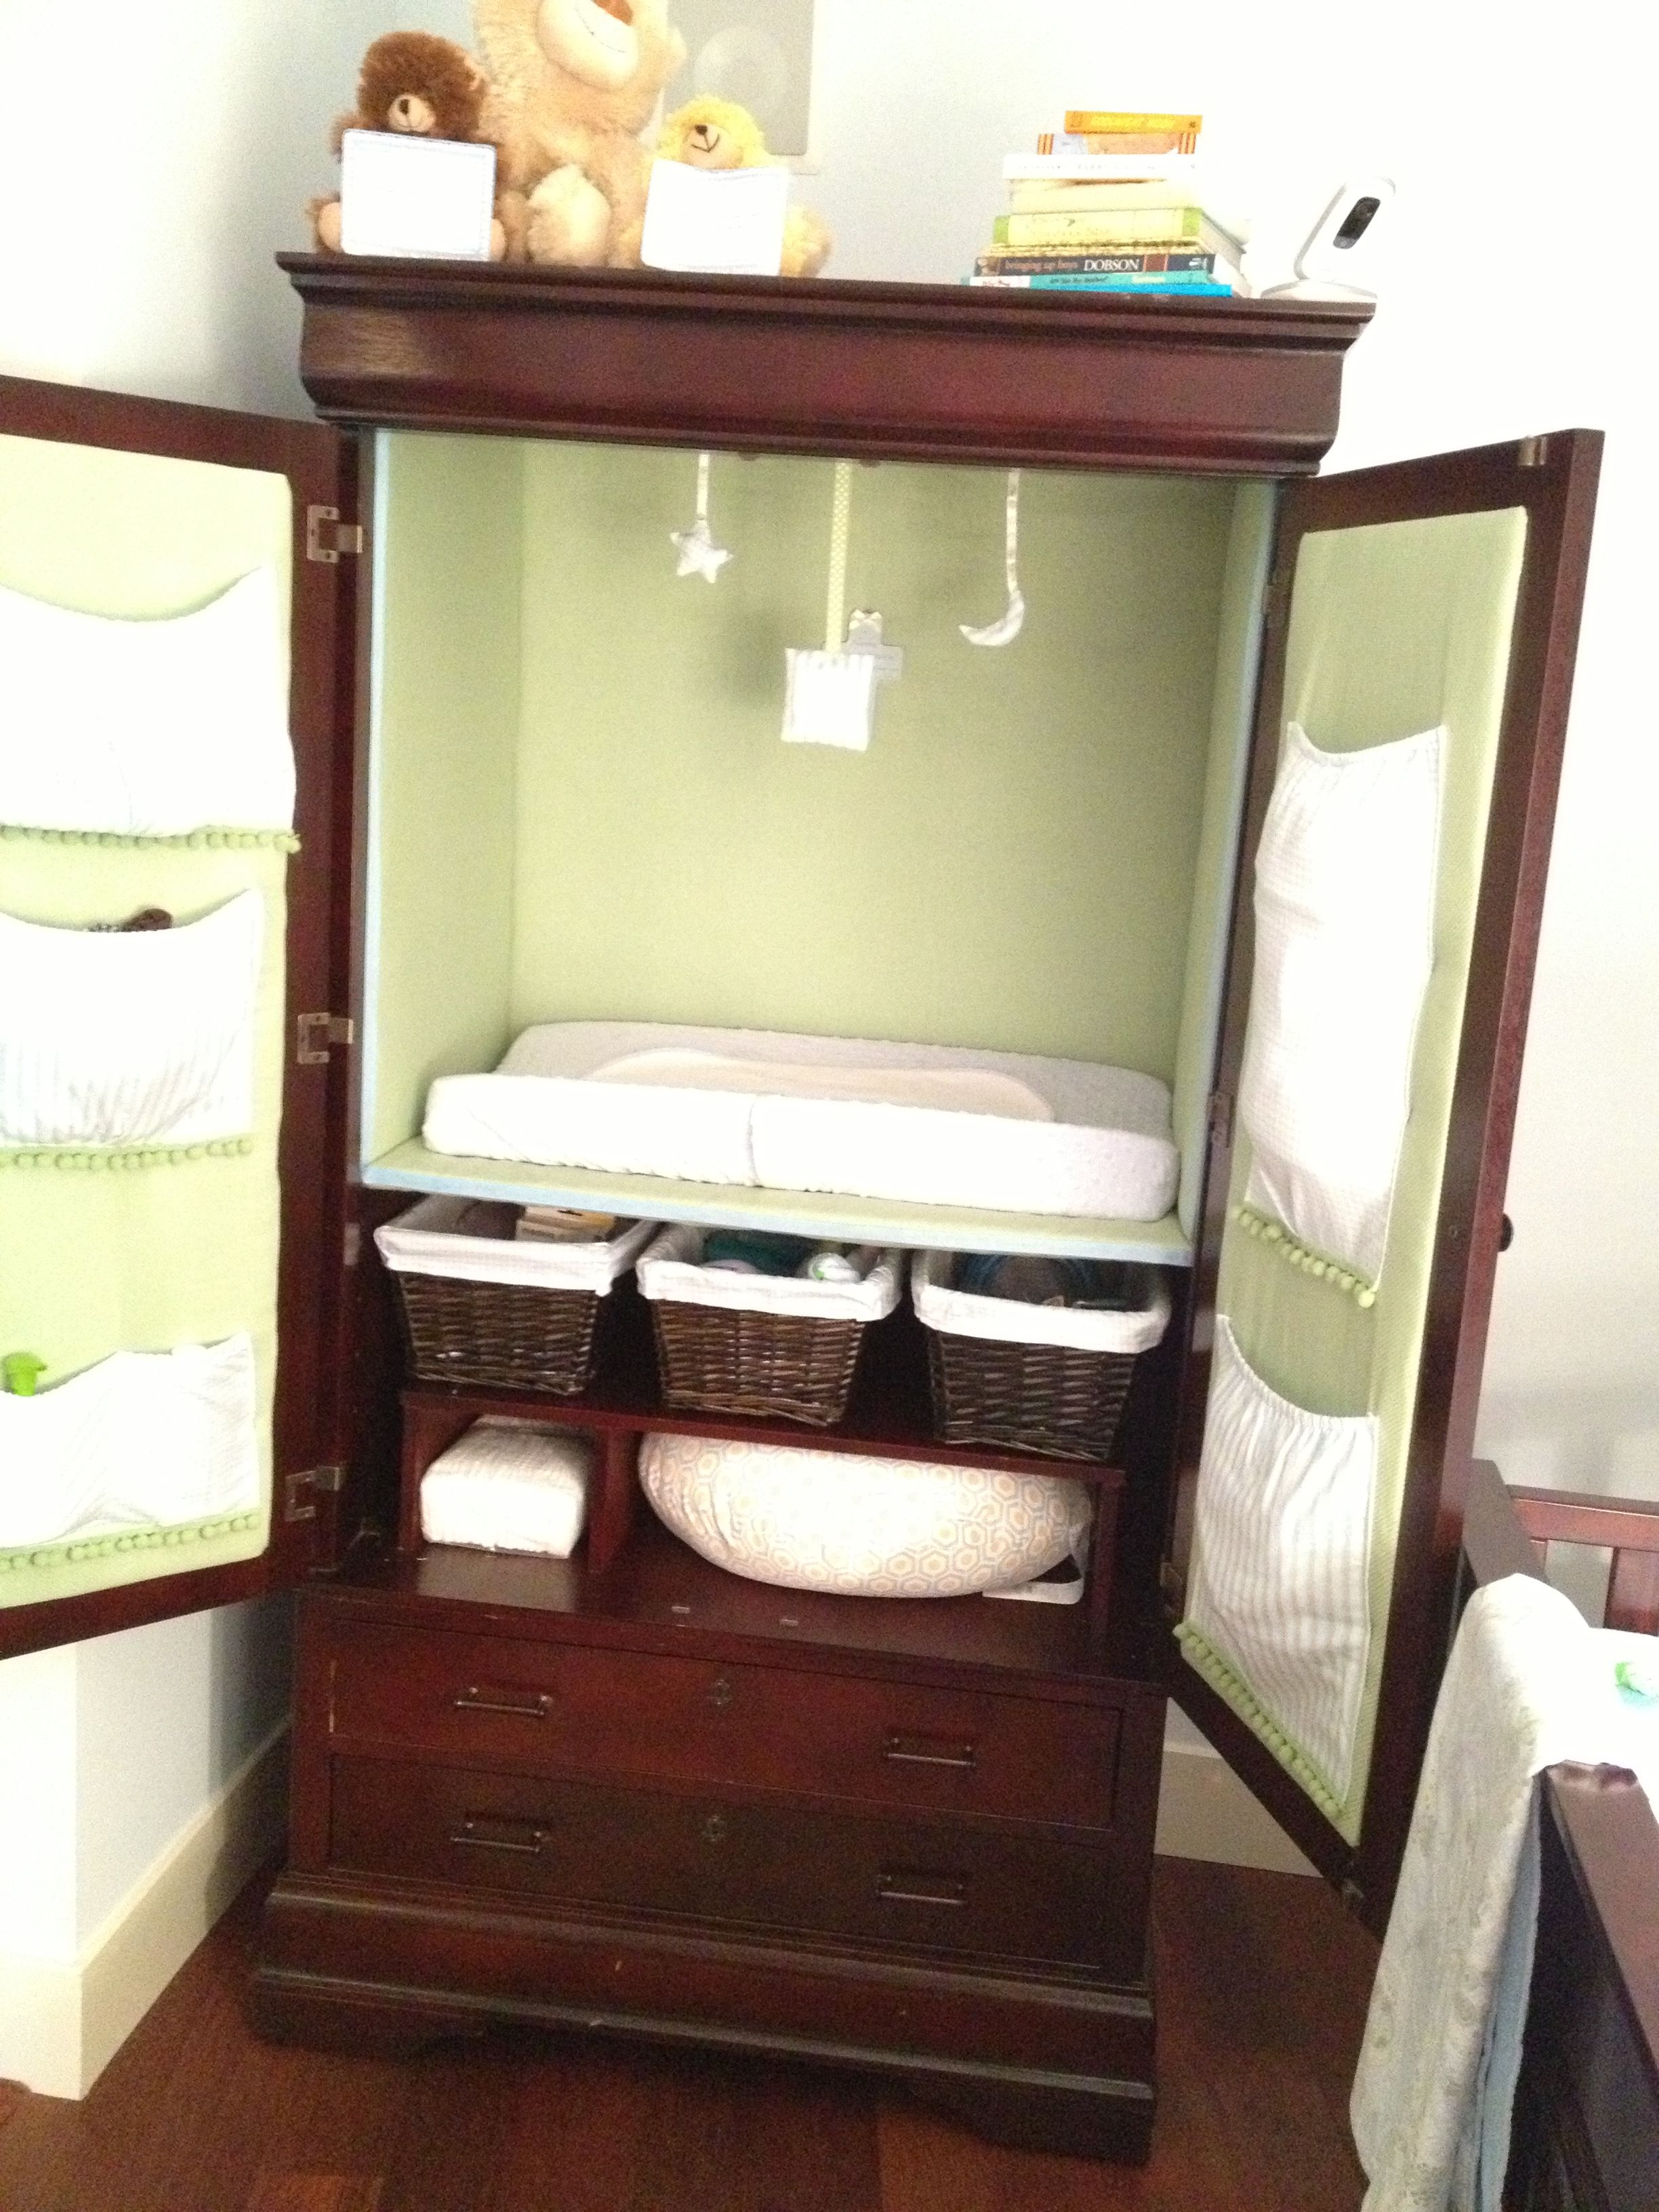 Converted Armoire To Changing Station For Baby Nursery!